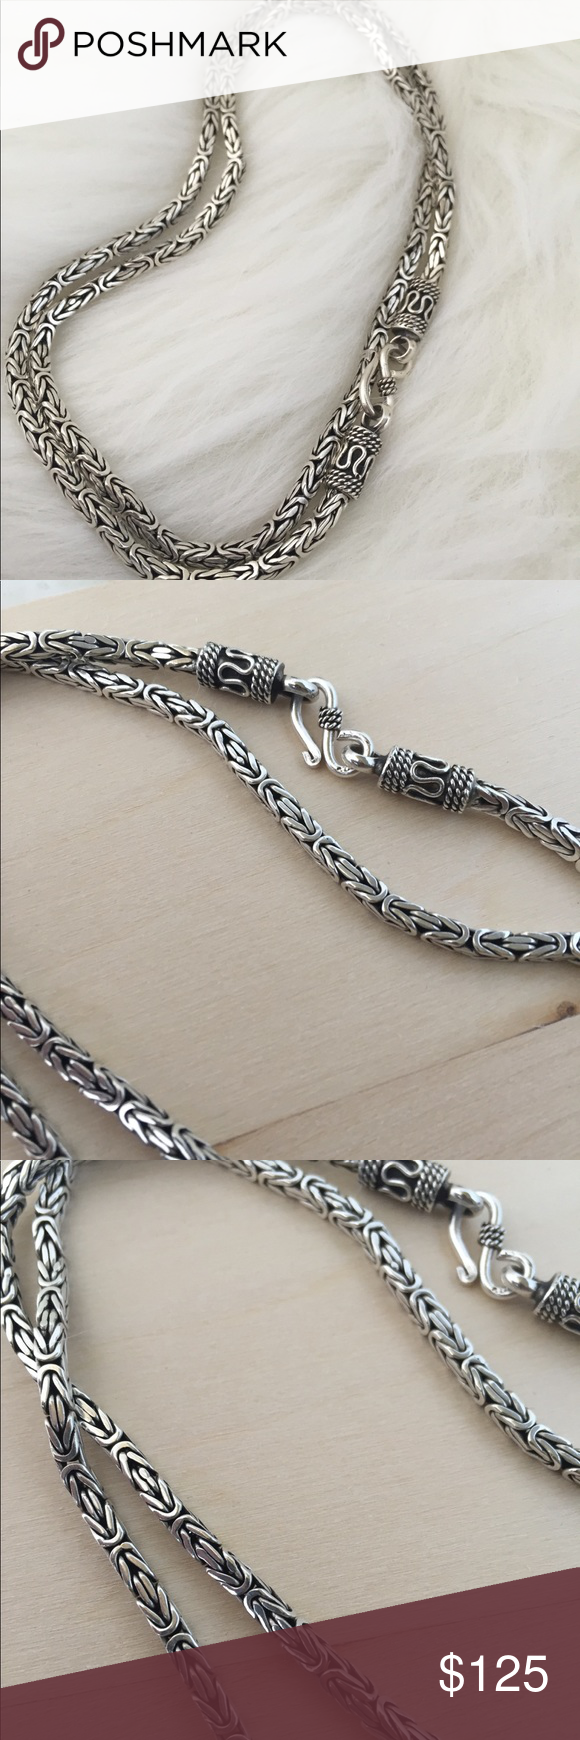 1.5mm Bar Link Heshe Italian Chain in Solid 925 Italy Sterling Silver w// Rhodium